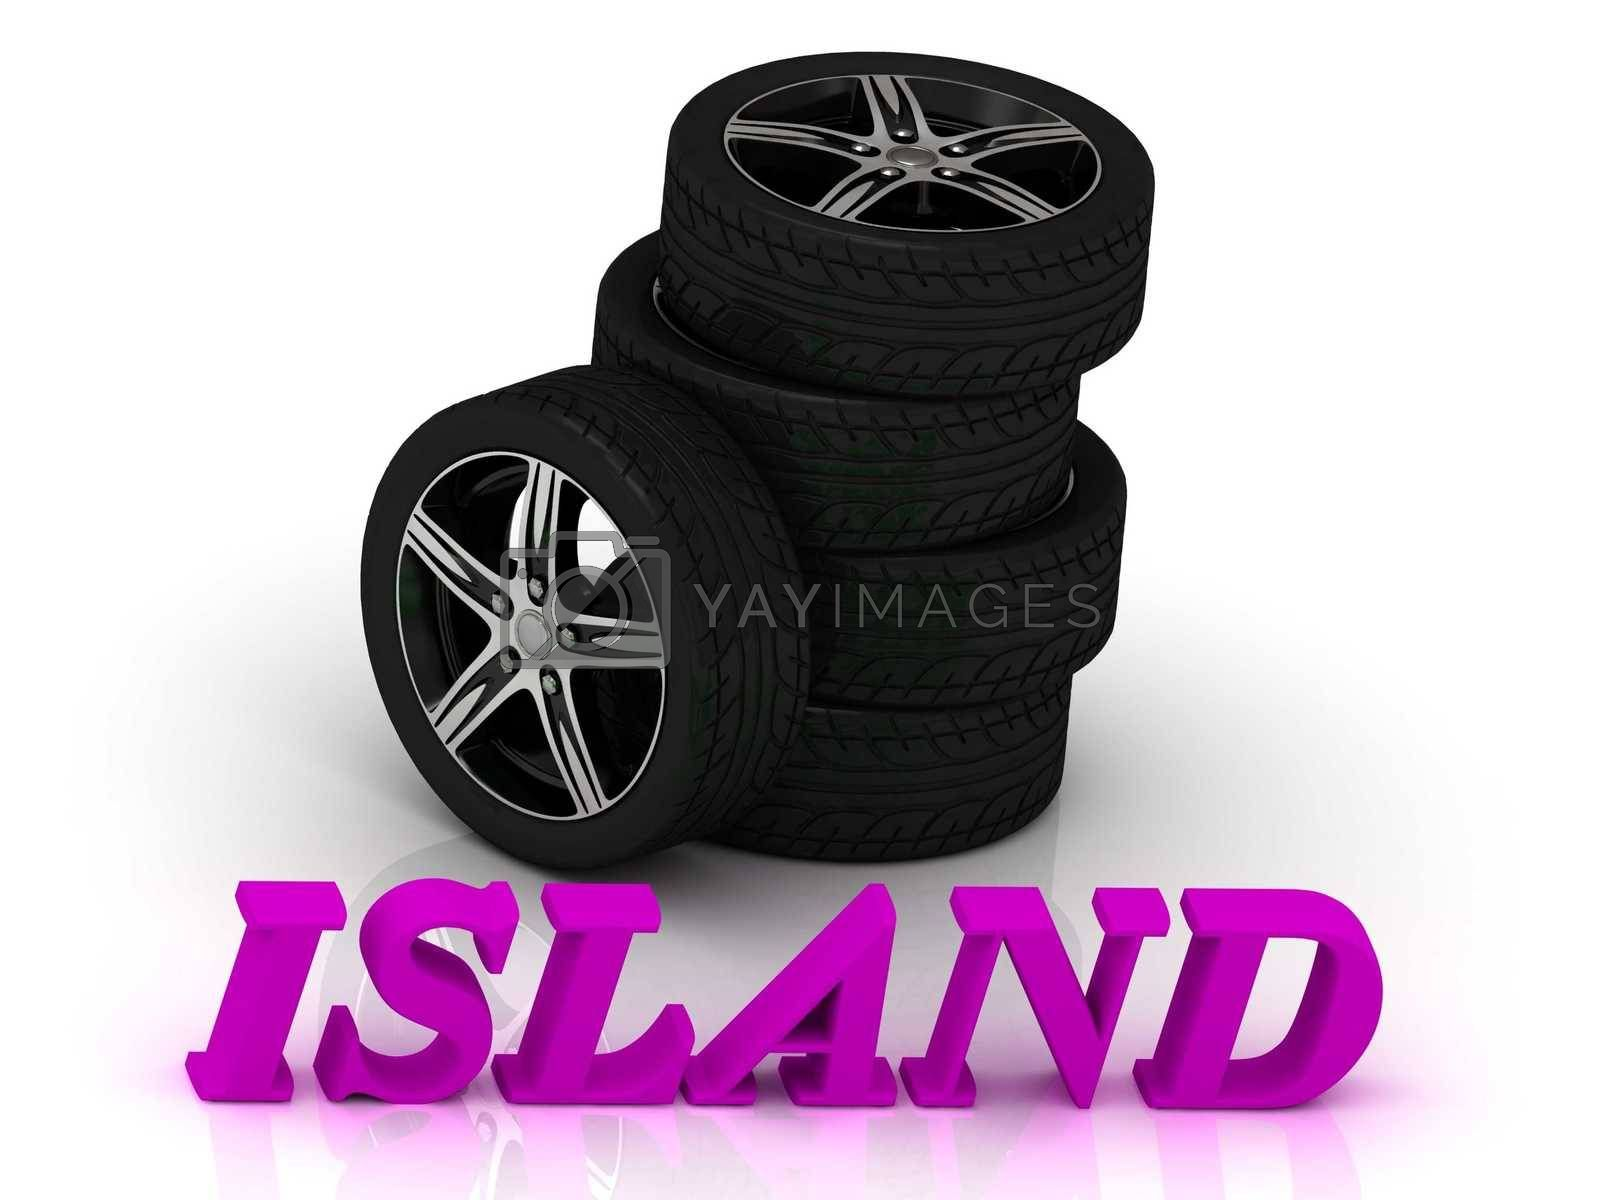 ISLAND- bright letters and rims mashine black wheels on a white background